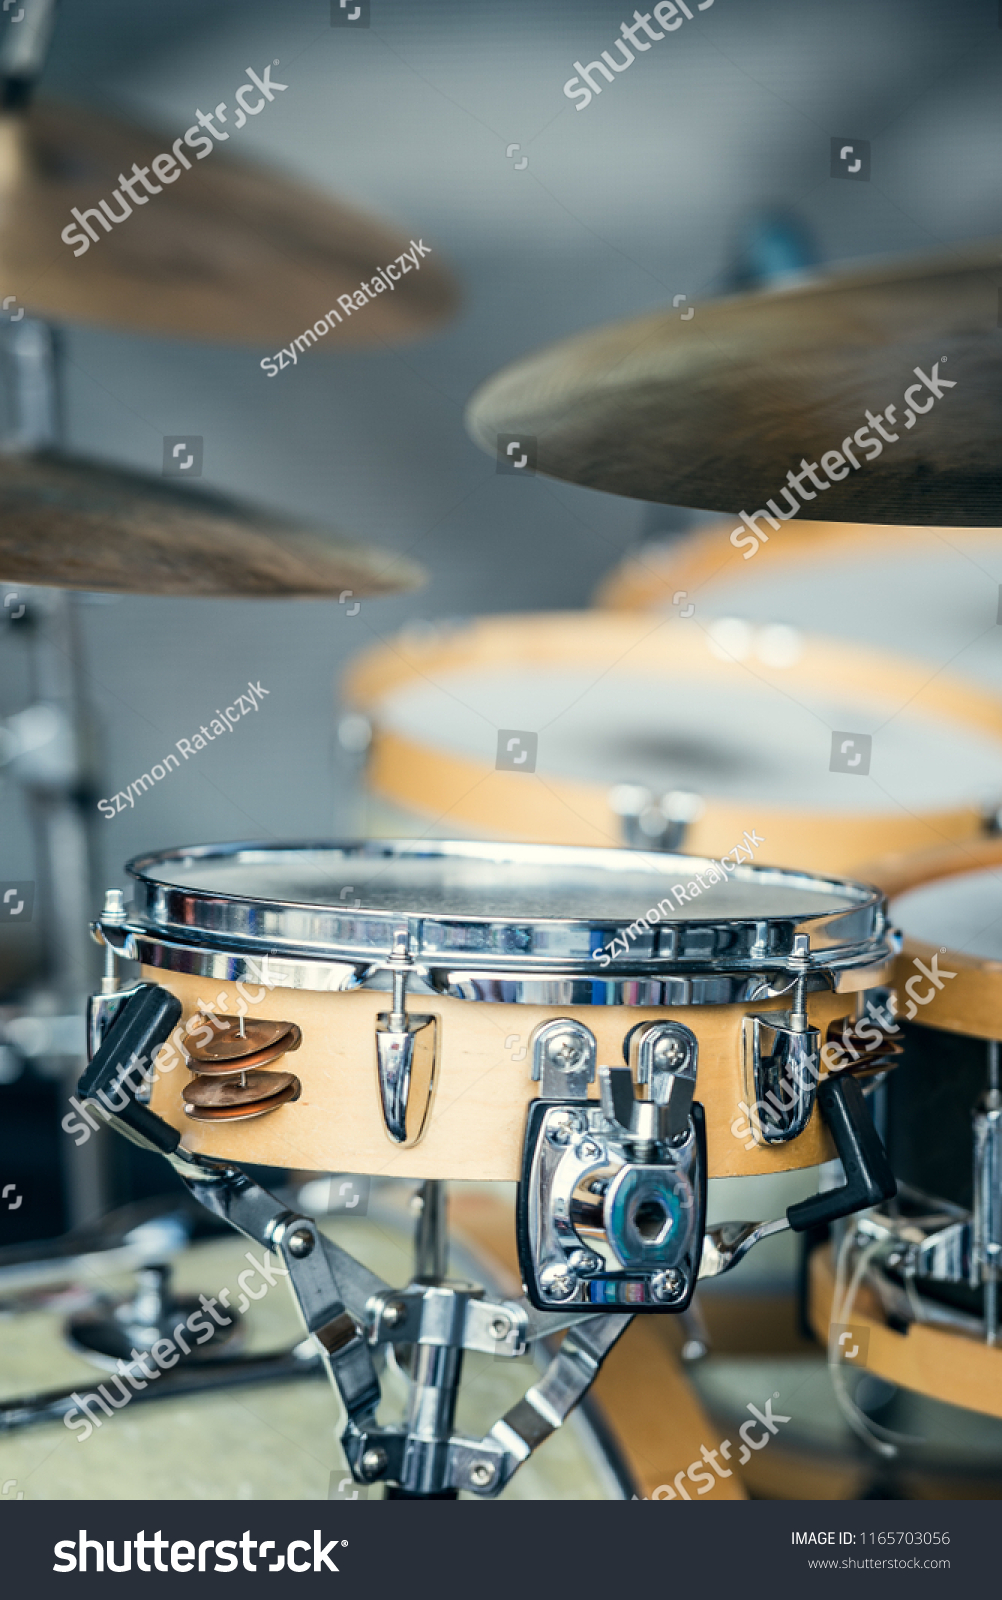 Analog Drum Set Cymbals Snaredrum Stock Photo Edit Now 1165703056